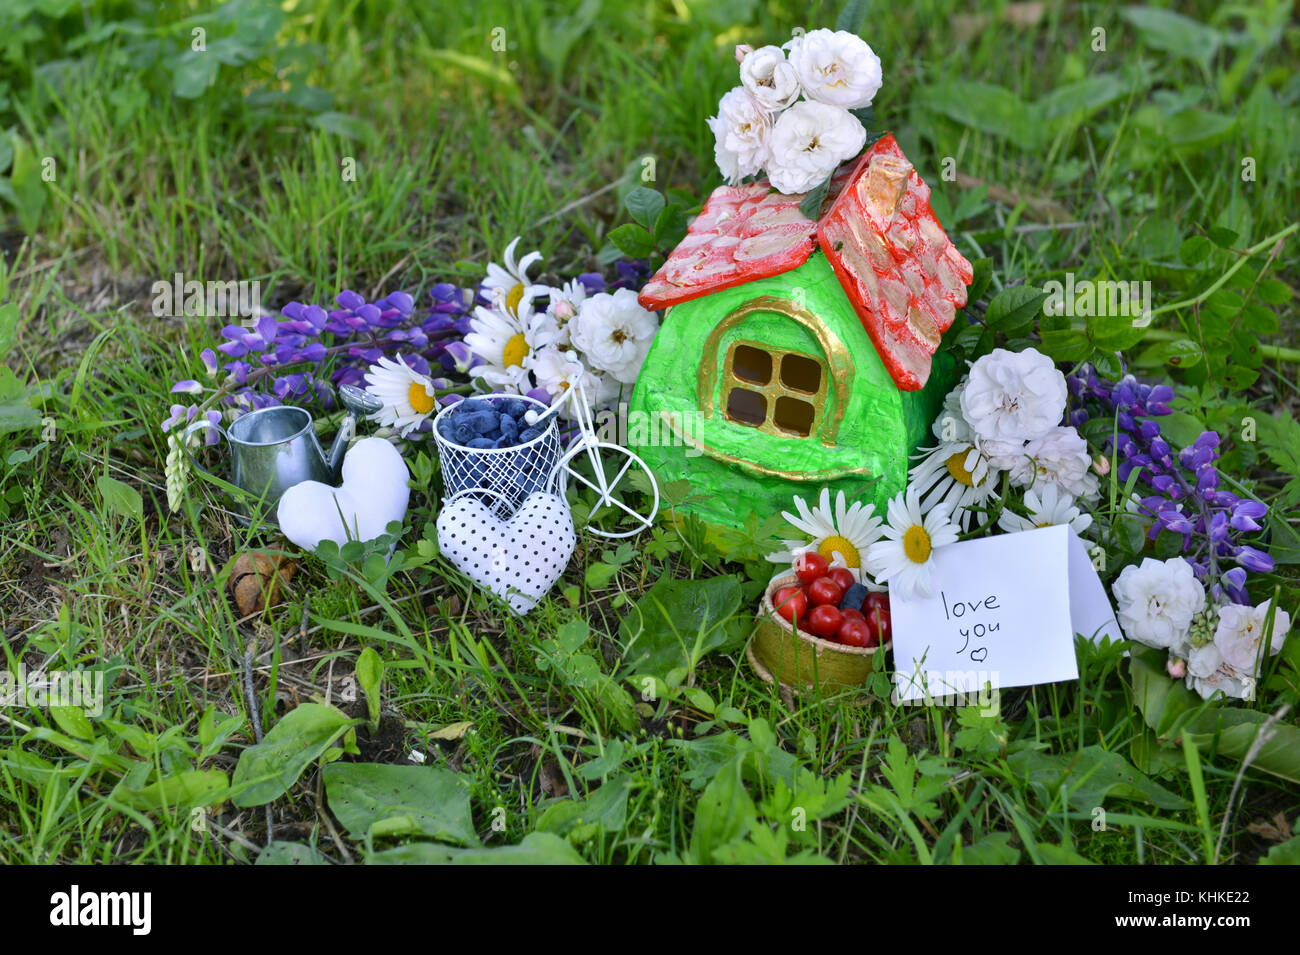 Small house with note love you, summer berries and flowers on the grass in the garden - Stock Image